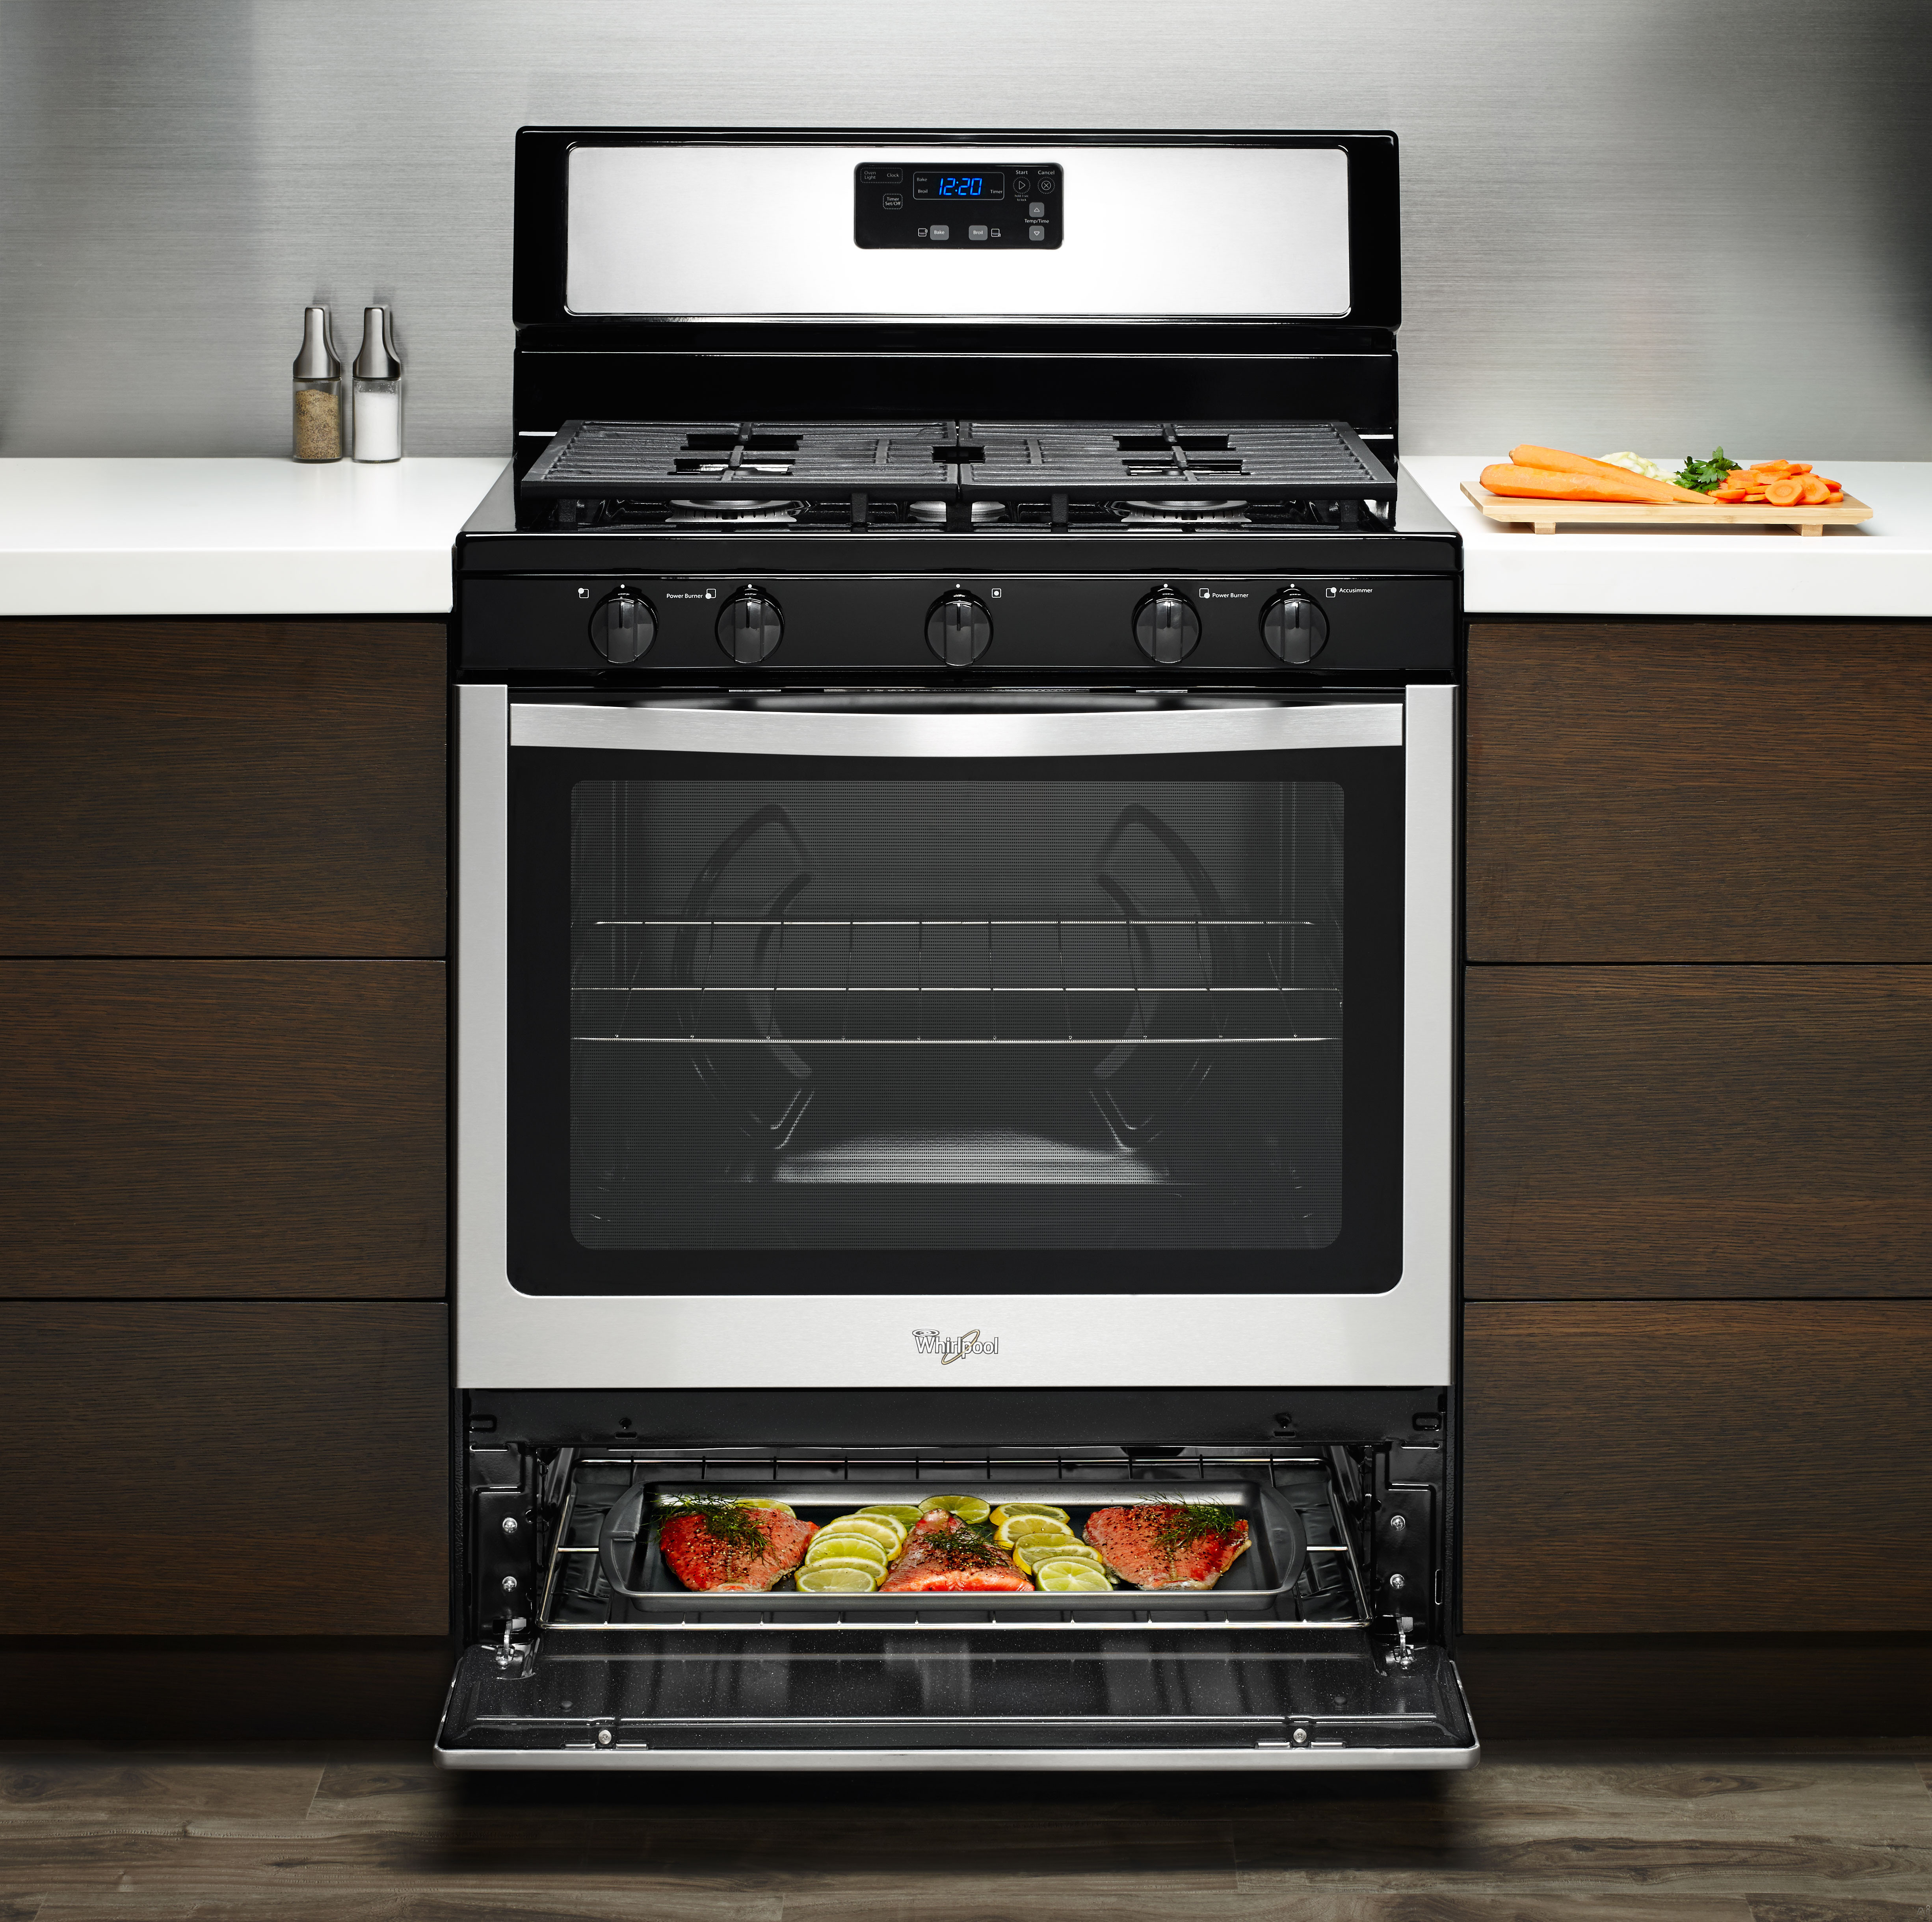 Whirlpool Wfg505m0bw 30 Quot Freestanding Gas Range With 5